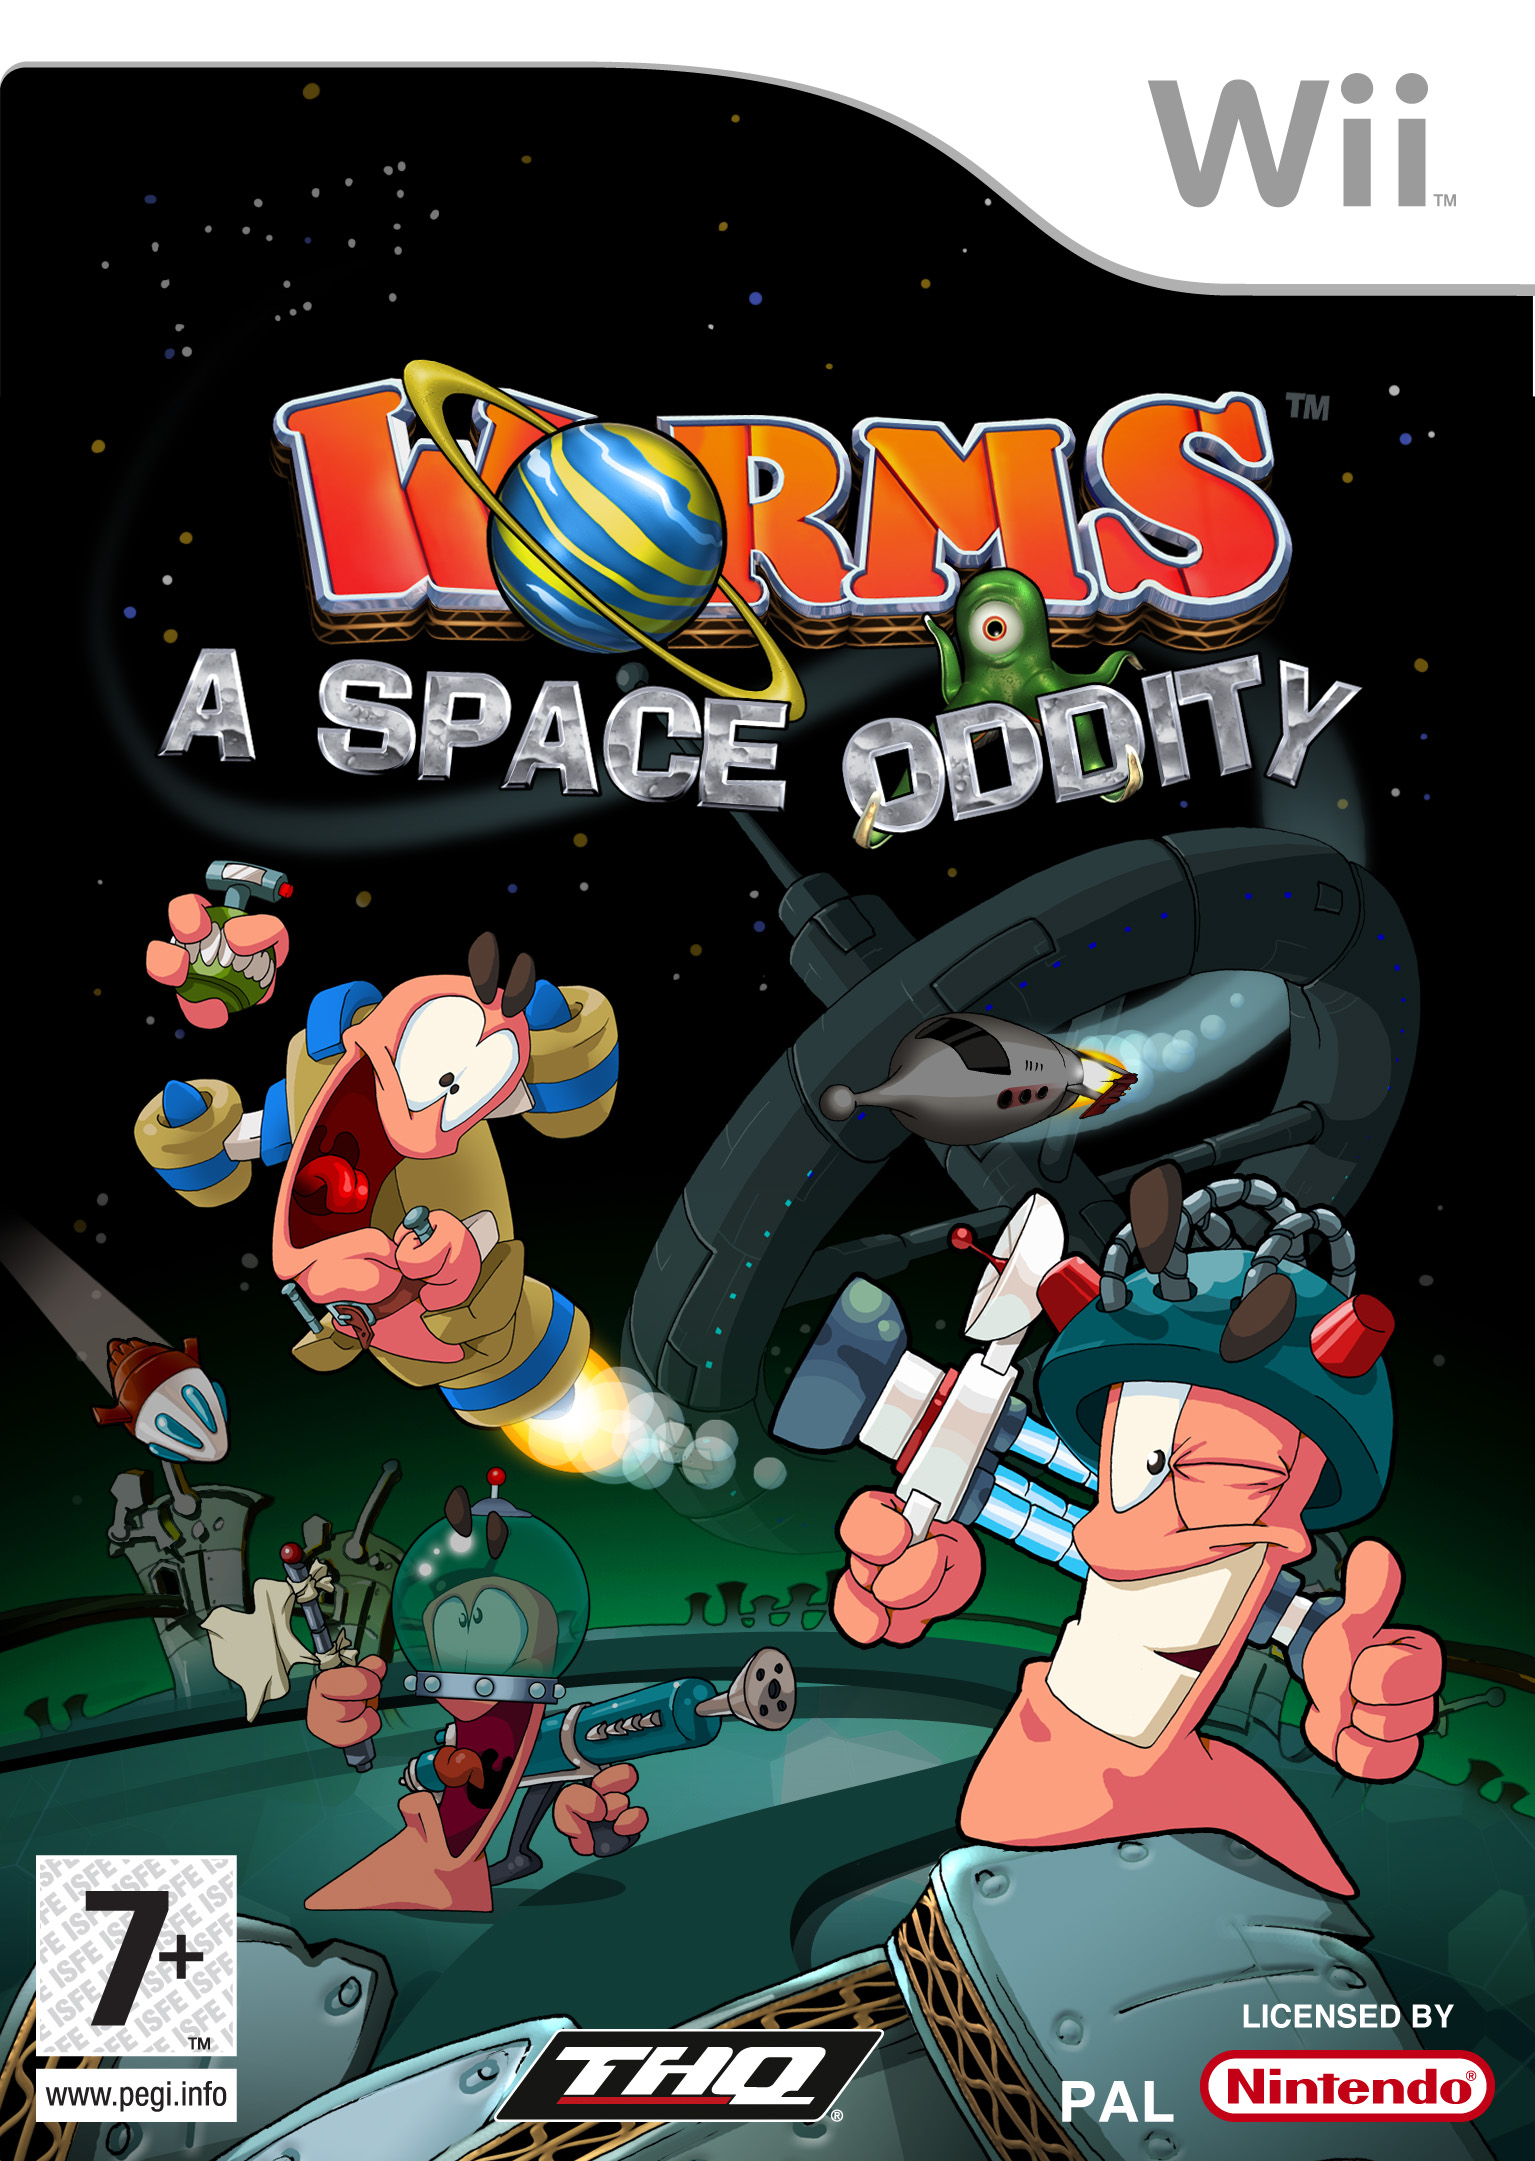 Worms armageddon new edition wikipedia